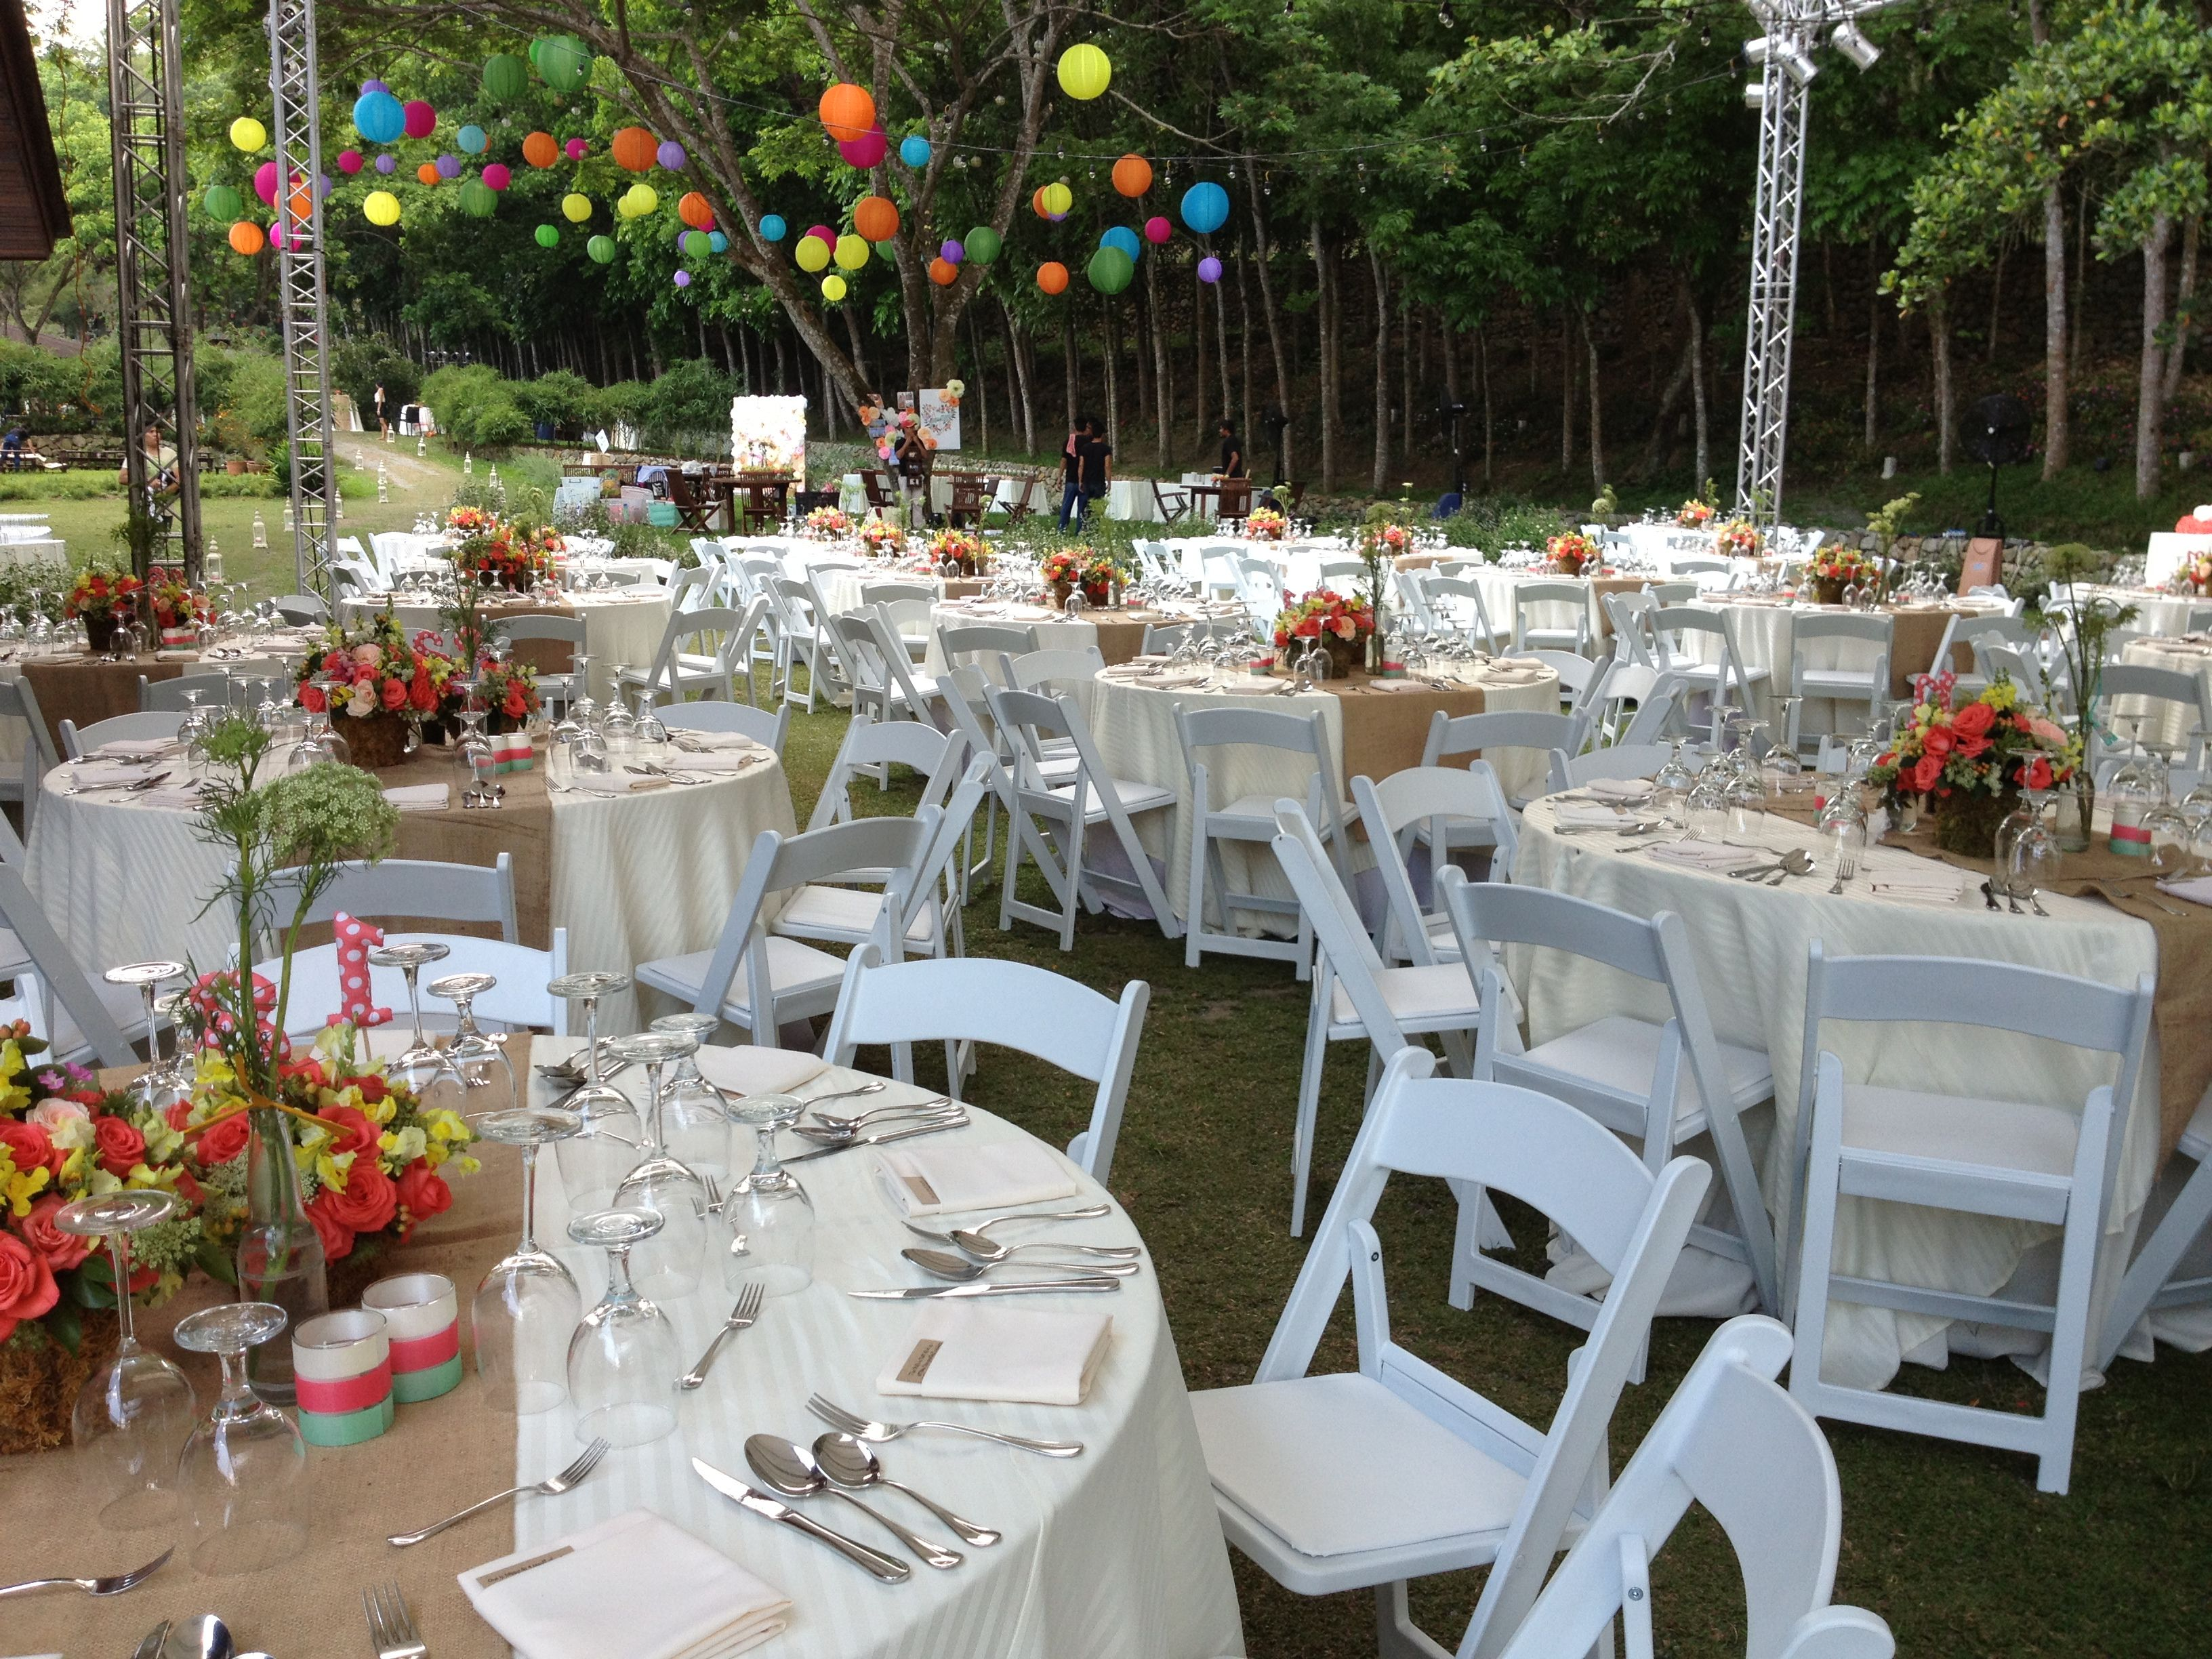 Reserv S White Folding Chairs At Wedding Held Angelfields In Silang Cavite Tstseatsintown Whitefoldingchairs Events Pinterest